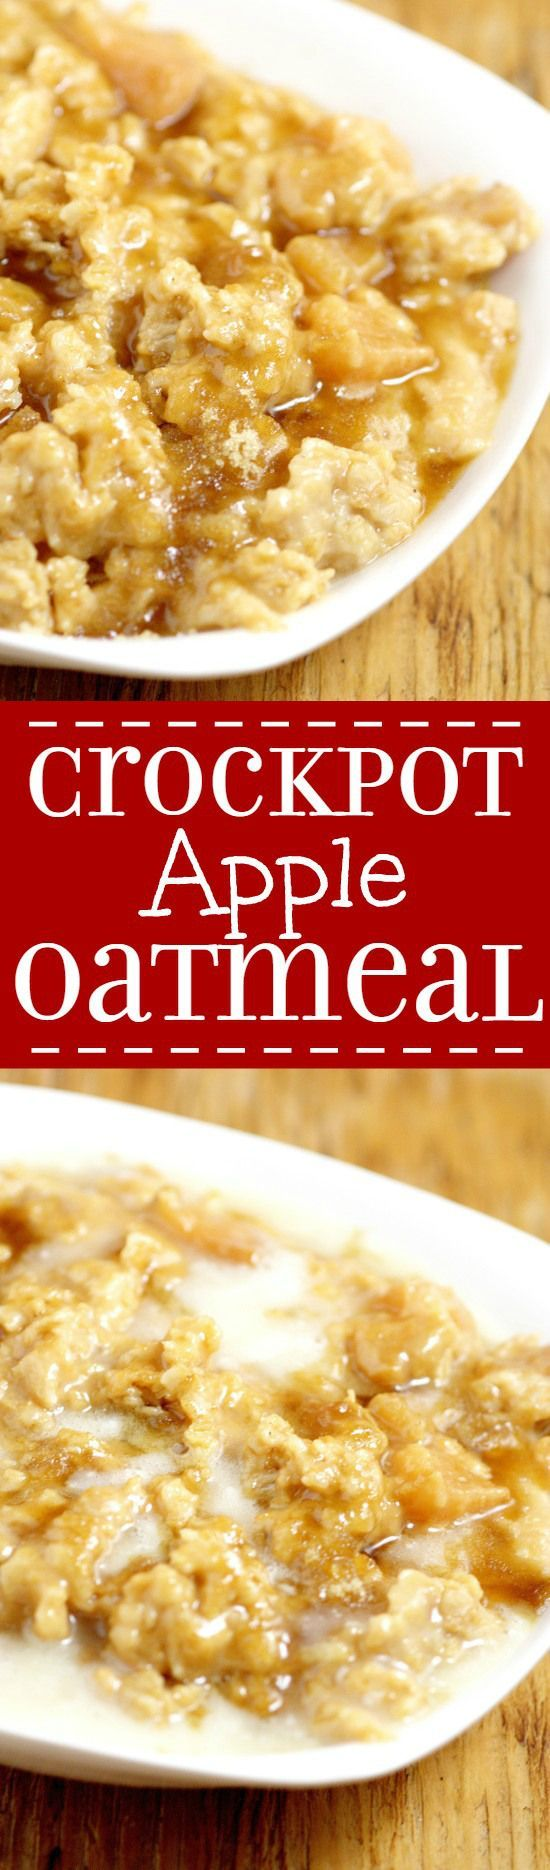 Crock Pot Apple Oatmeal | The Gracious Wife and other great make ahead breakfast recipes